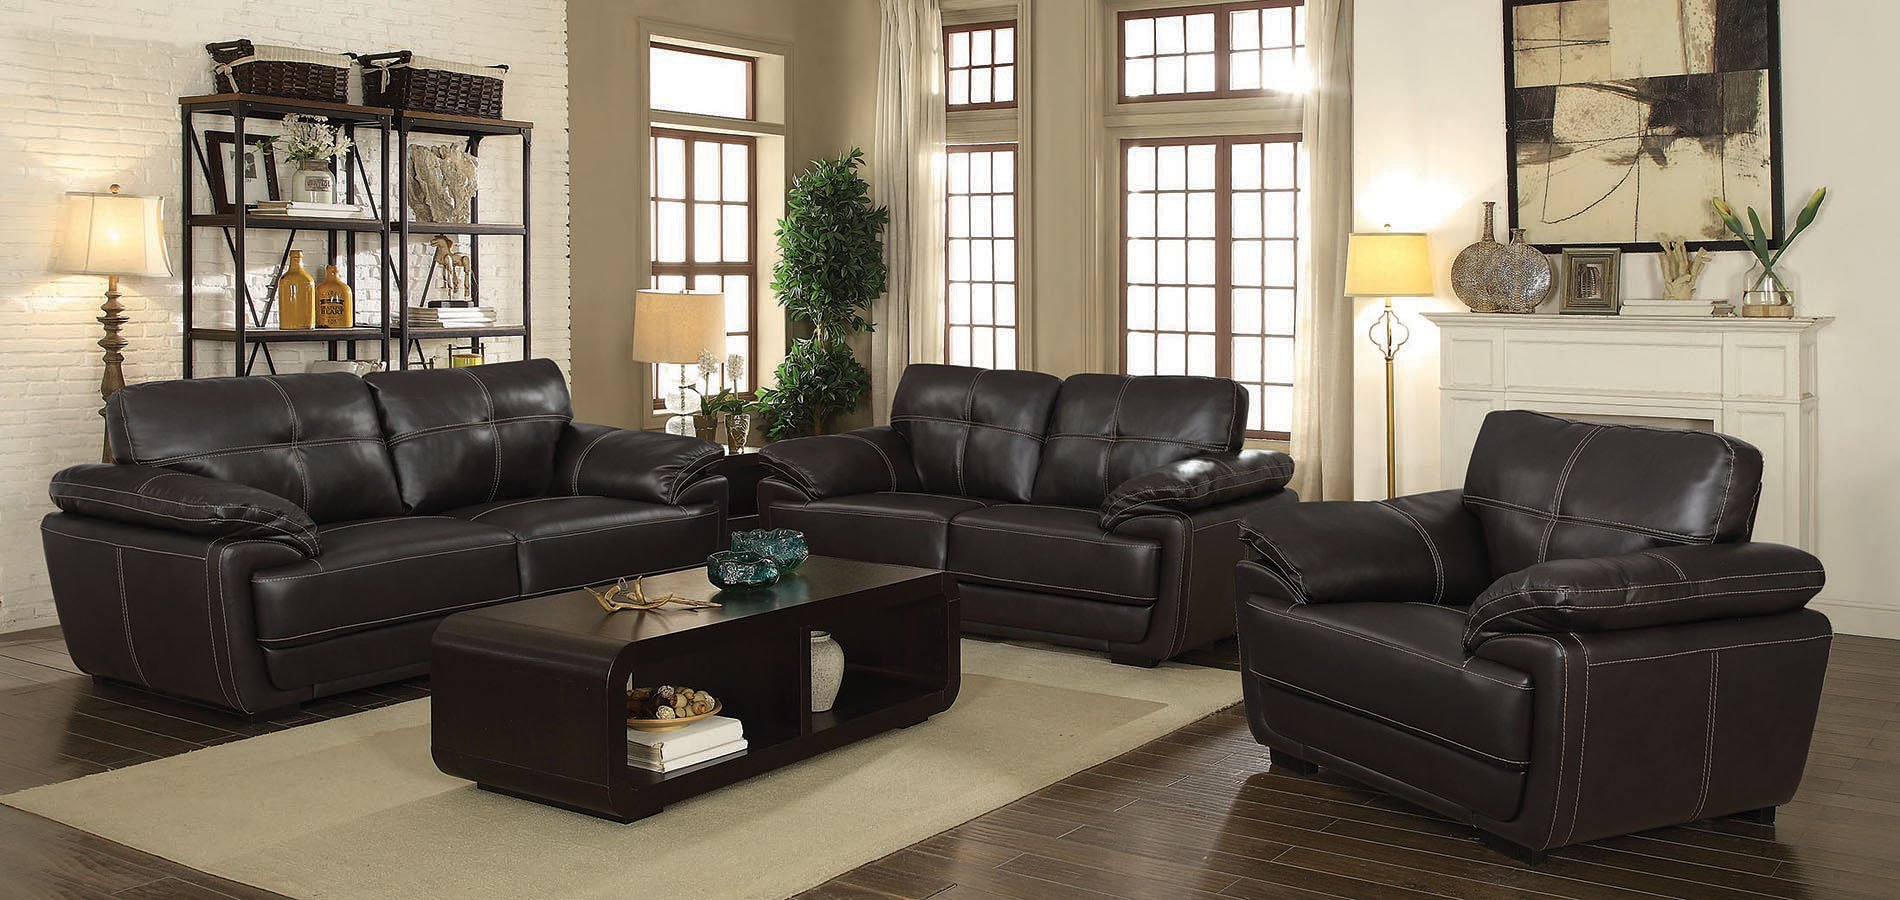 Zenon Living Room Set Brown Living Room Sets Living